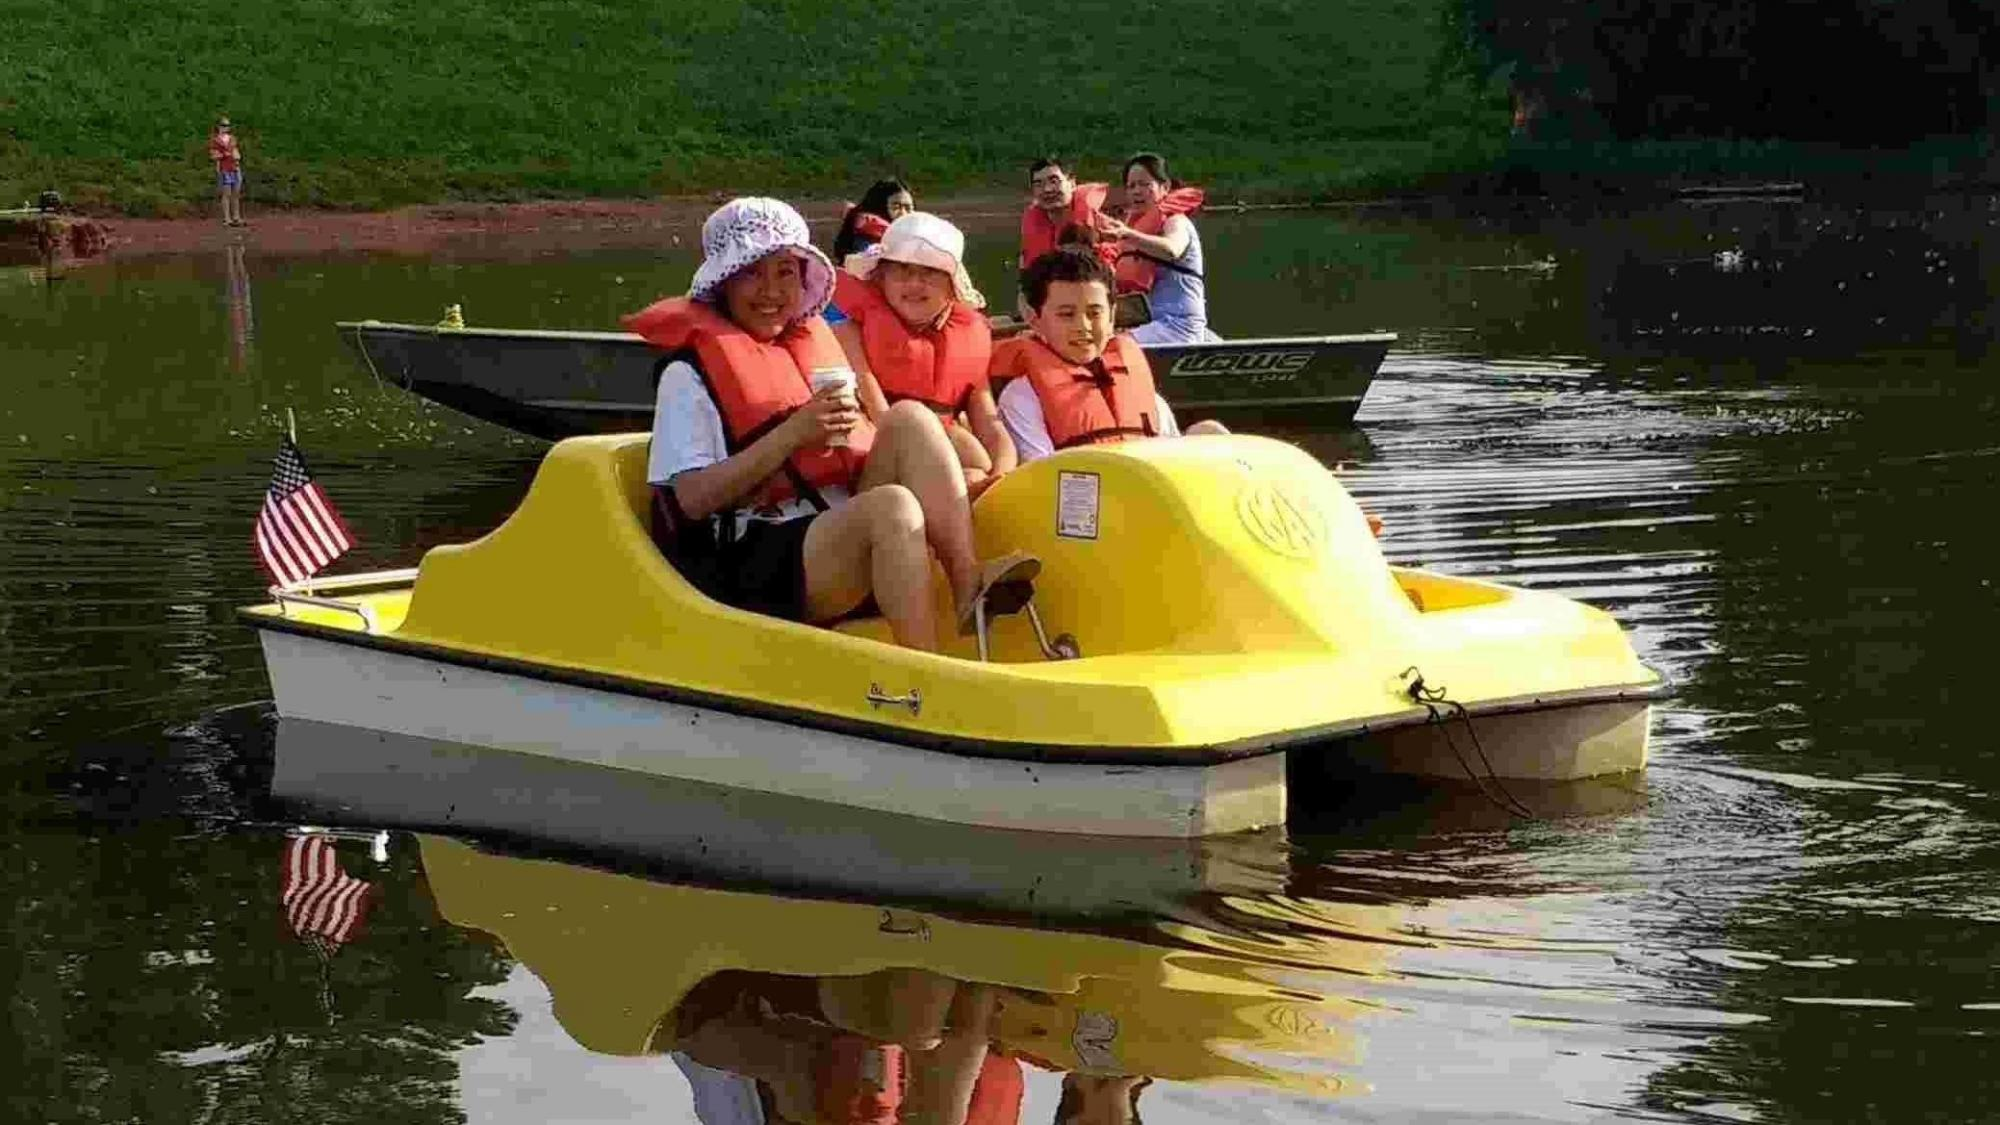 Take the Kids: Play - 5 places for pedal boat rides in